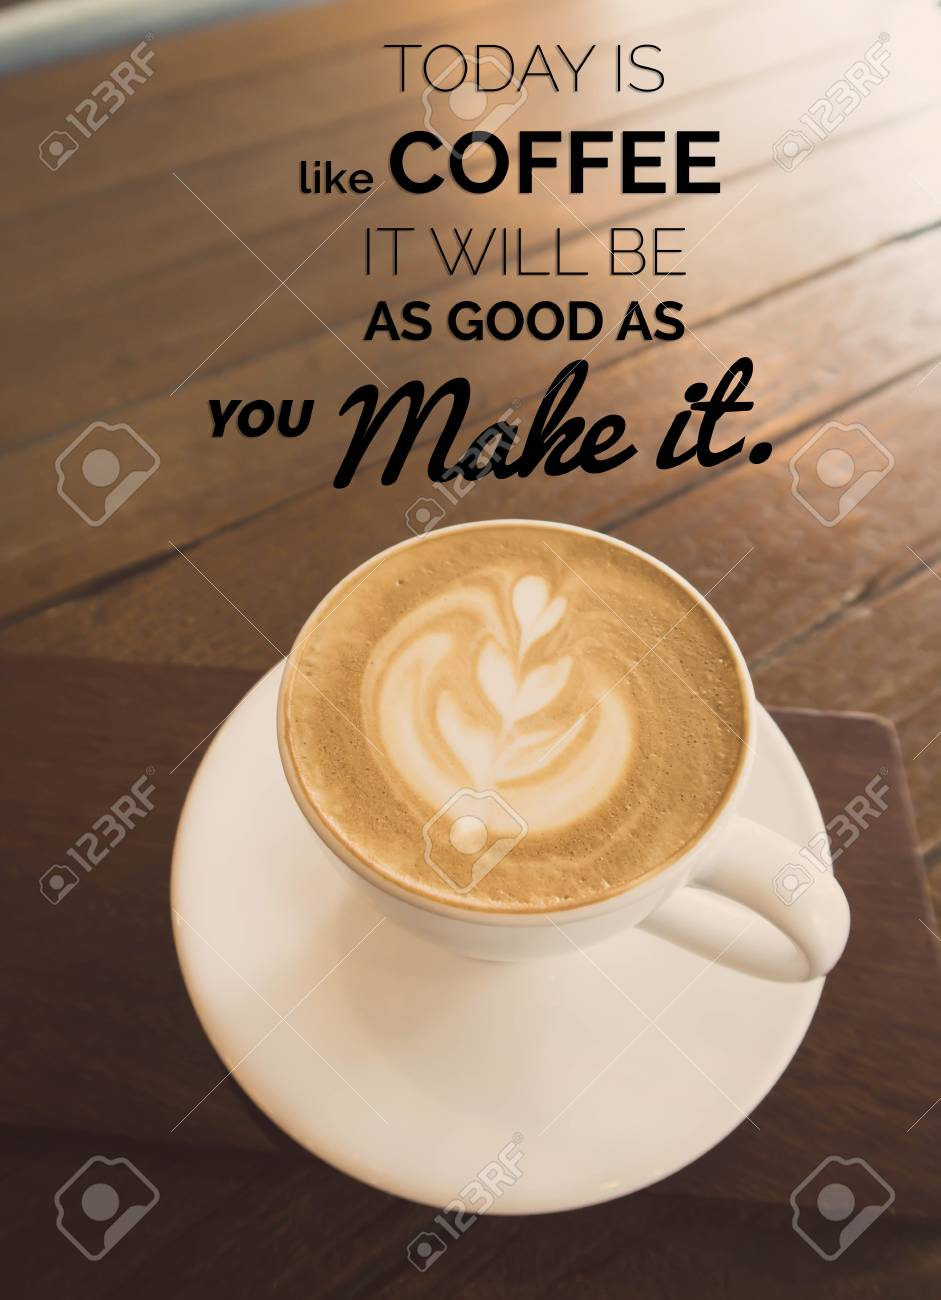 Wonderful Inspirational Quote On Coffee Cup In Coffee Shop Background With Vintage  Filter Stock Photo   97225141